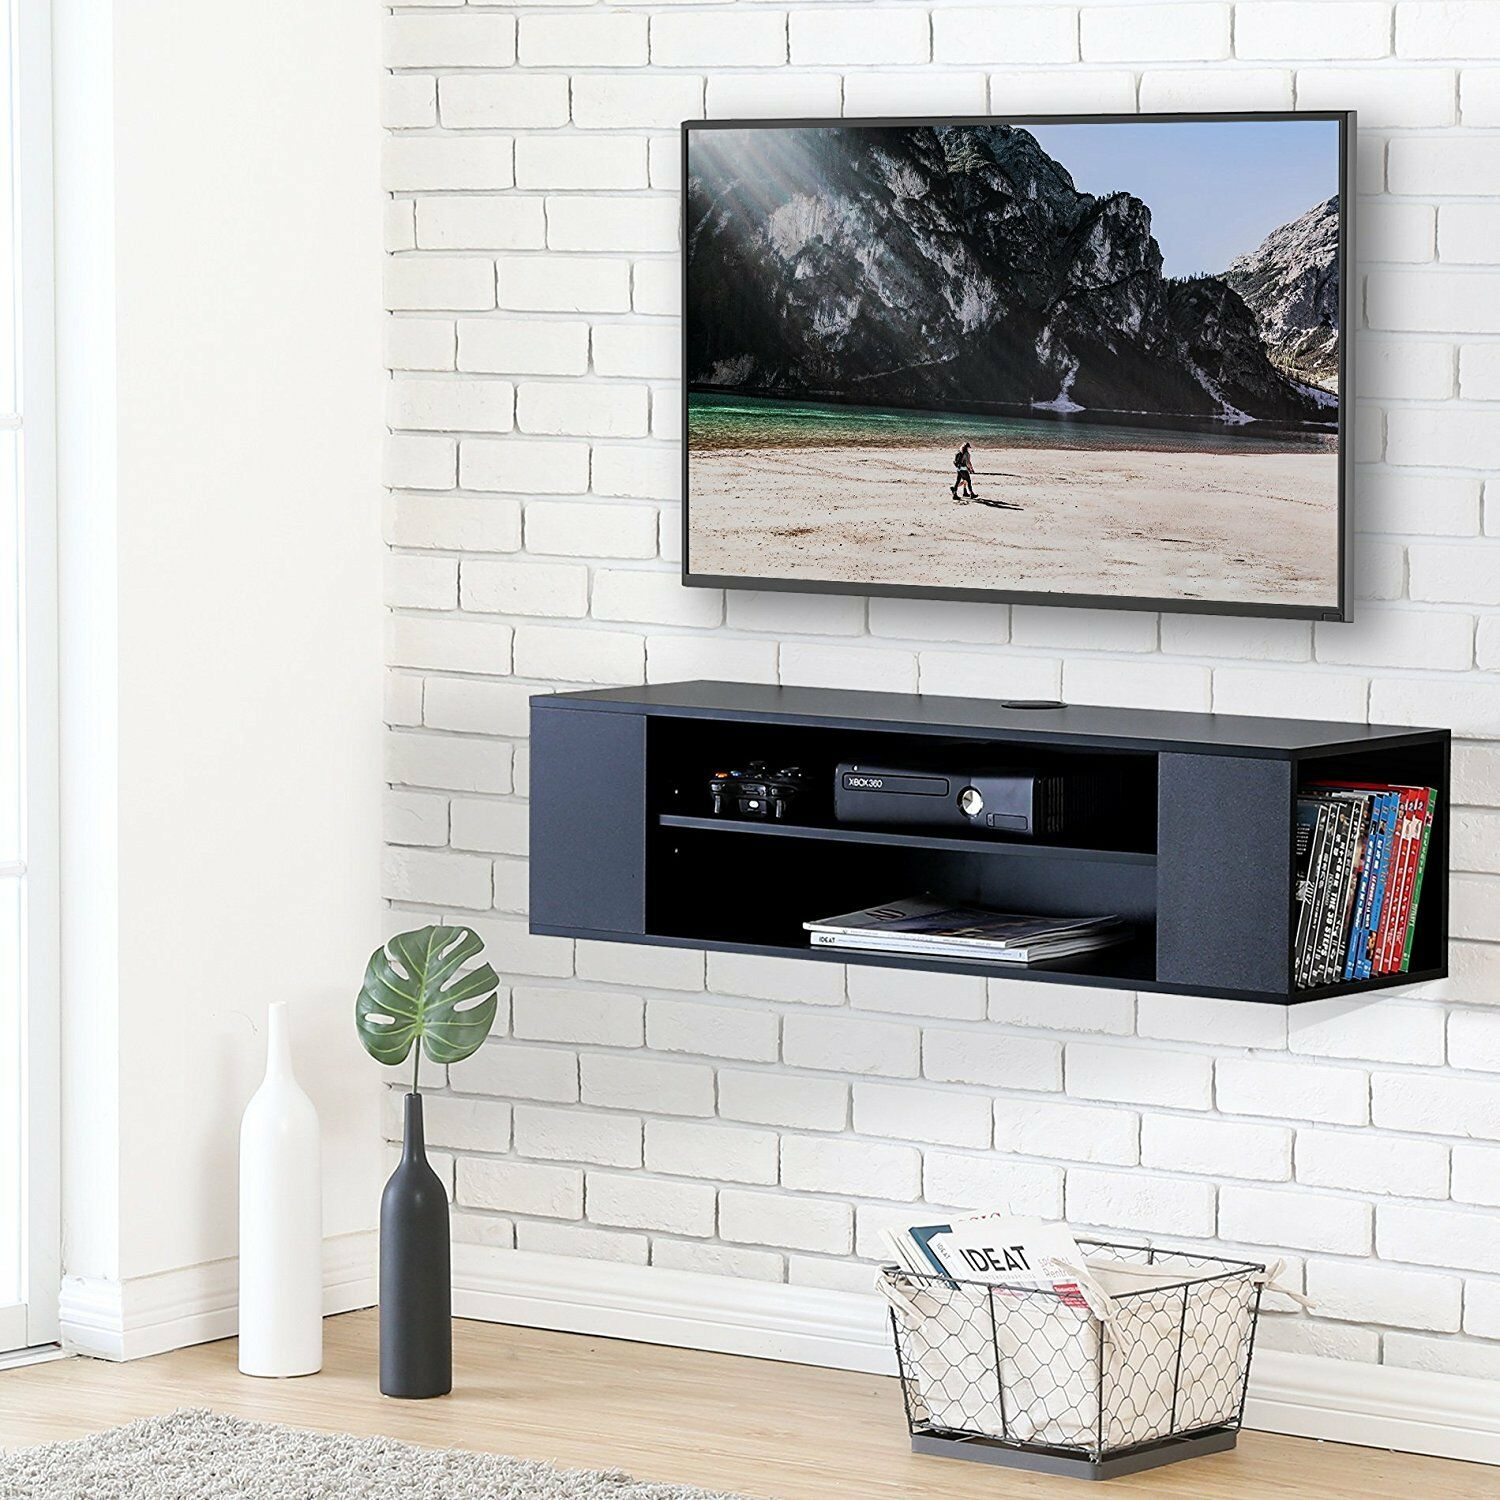 Fullsize Of Wall Mounted Media Console